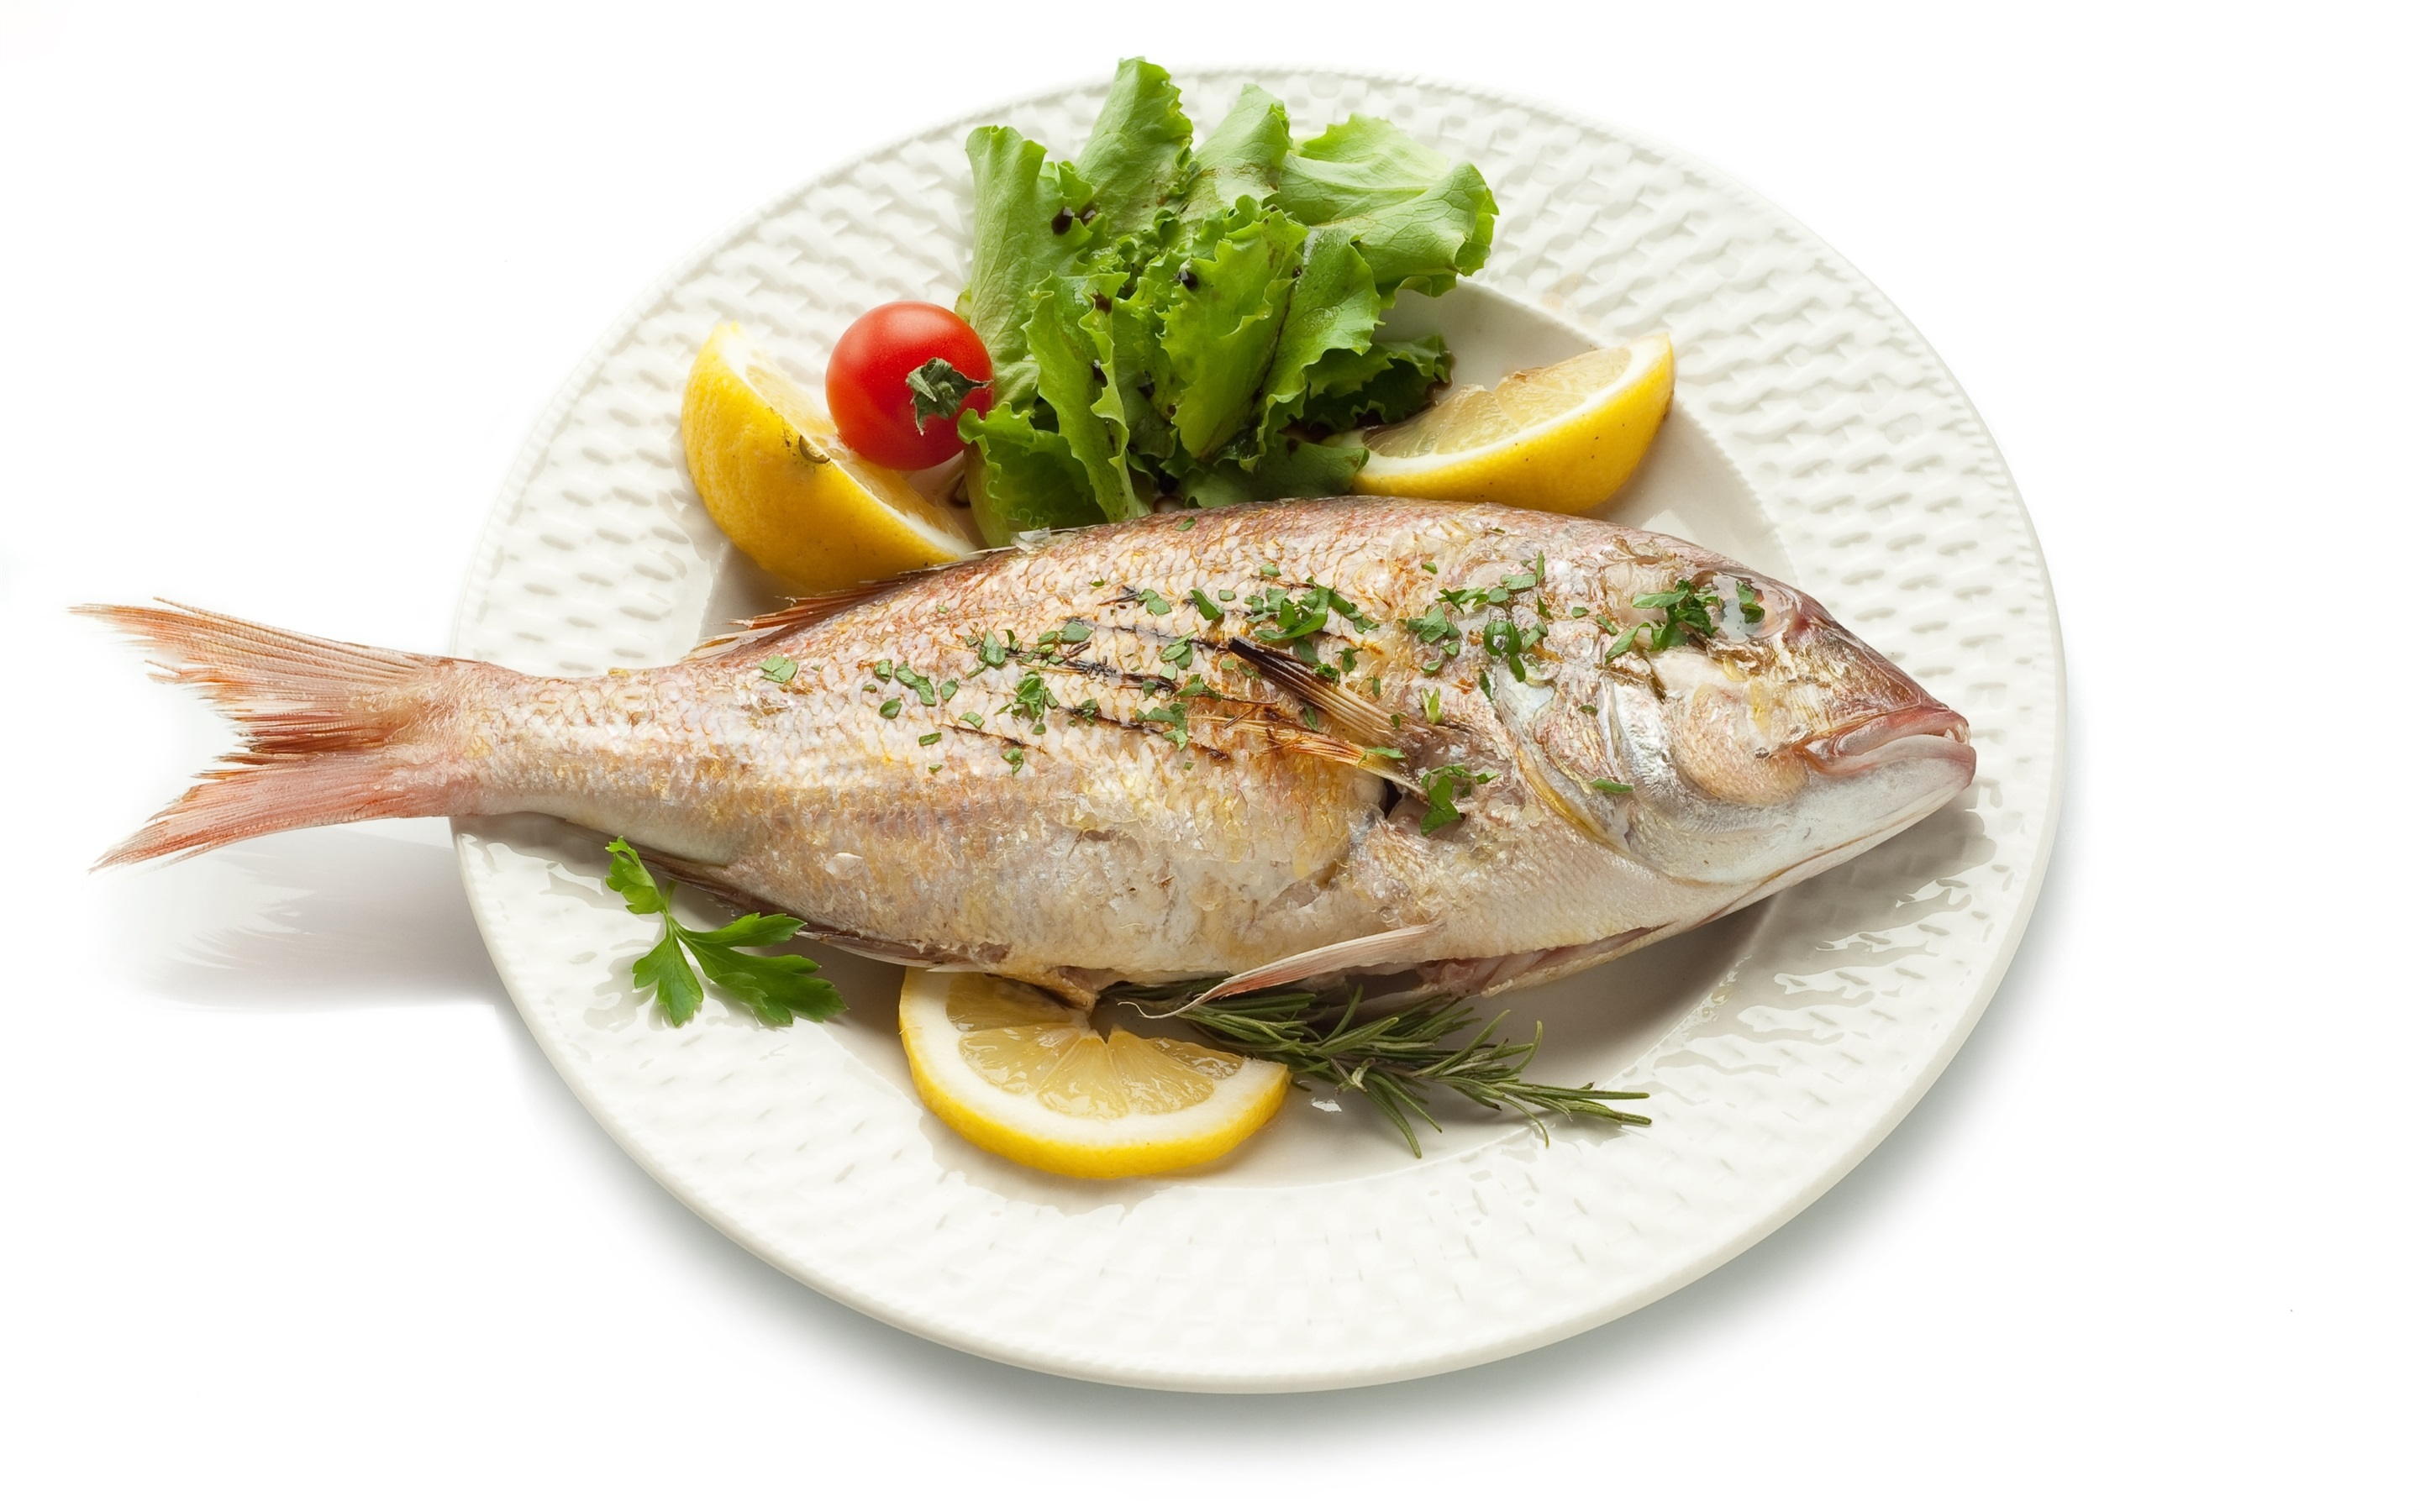 Wallpaper Fried fish, food, white background 2880x1800 HD Picture, Image